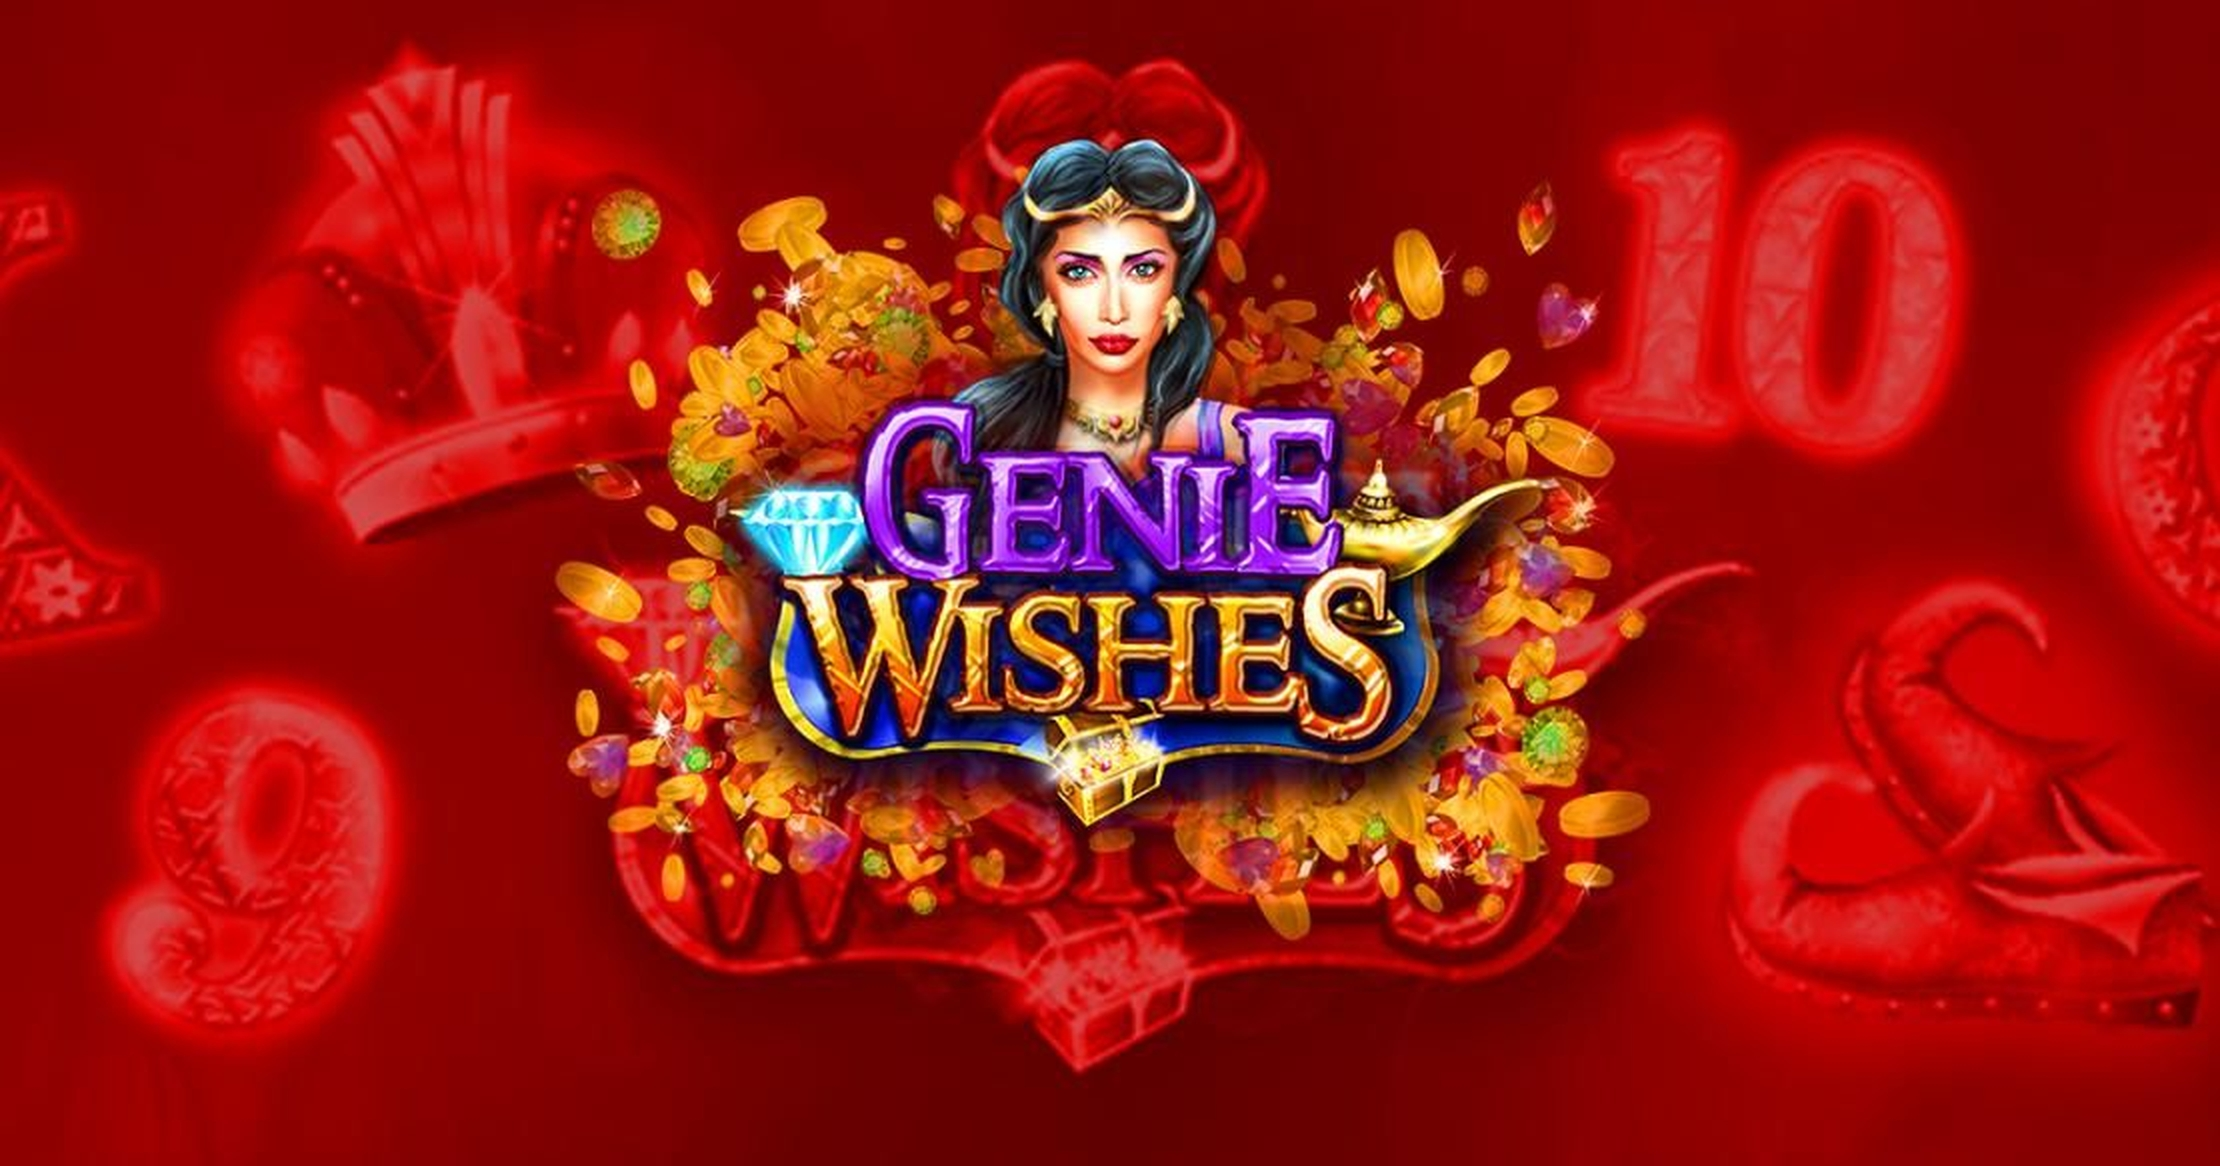 The Genie Wishes Online Slot Demo Game by Booming Games